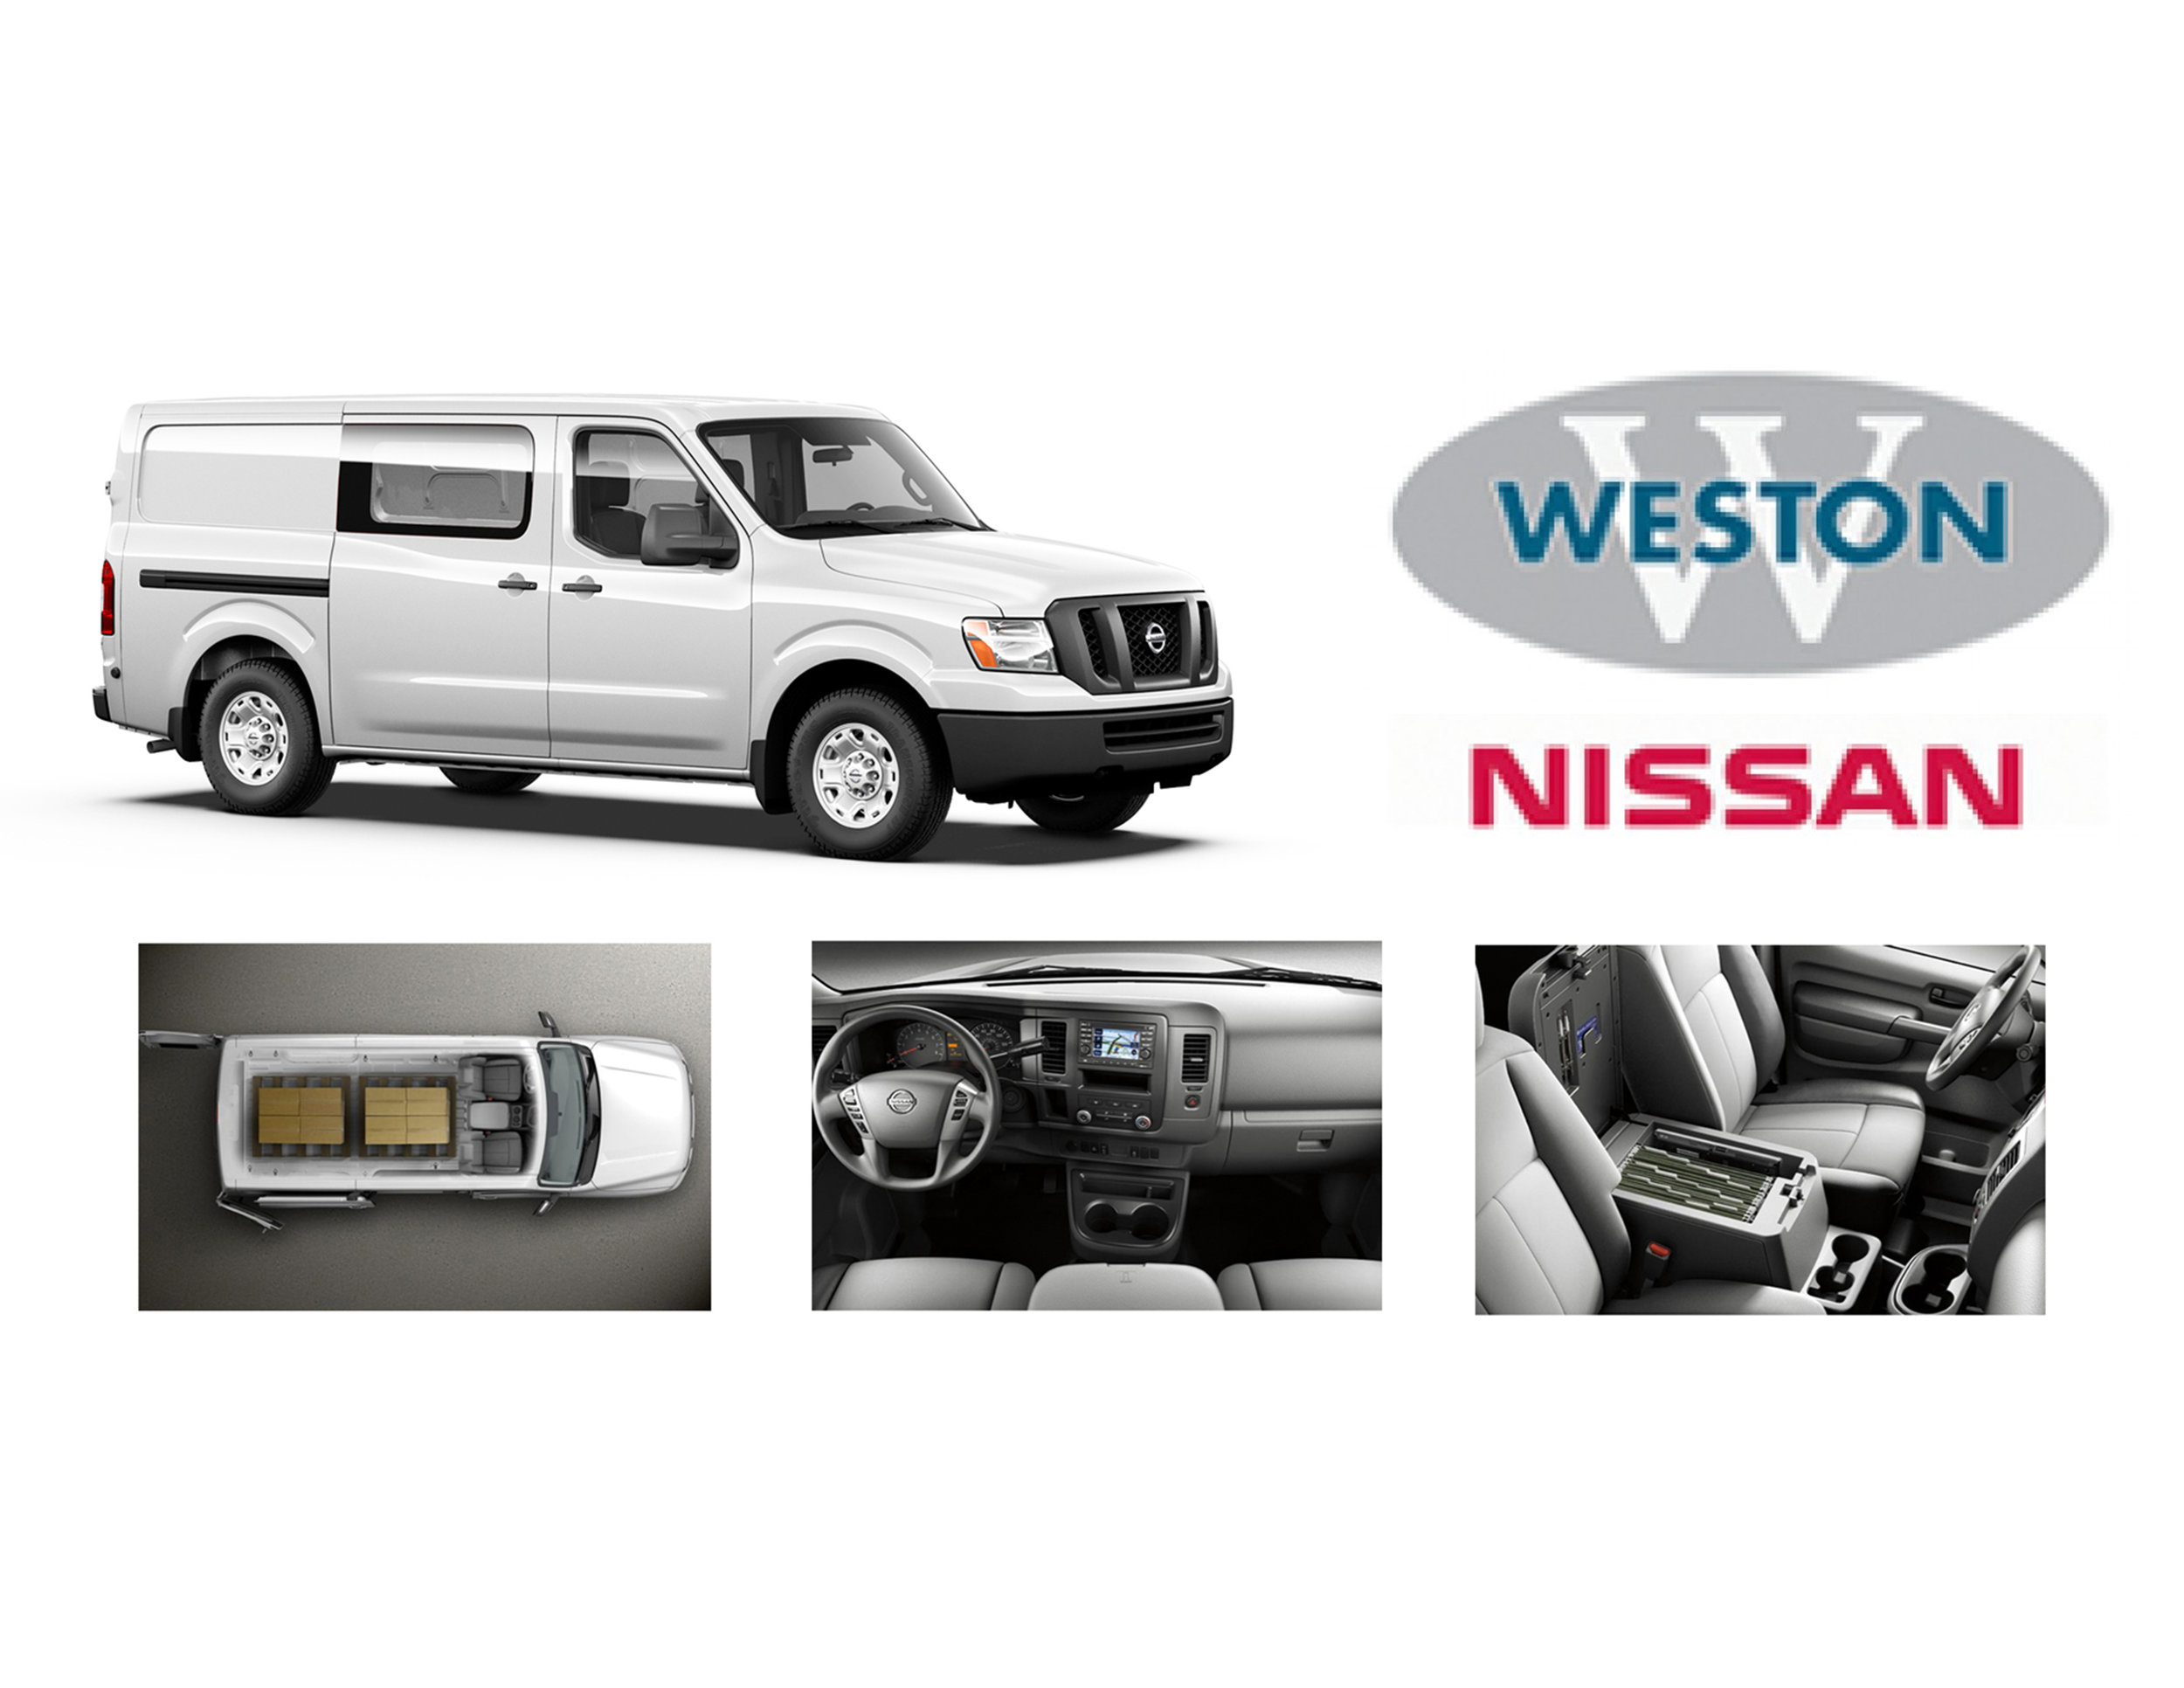 The NIssan NV 1500 - a solid van built on a truck frame.